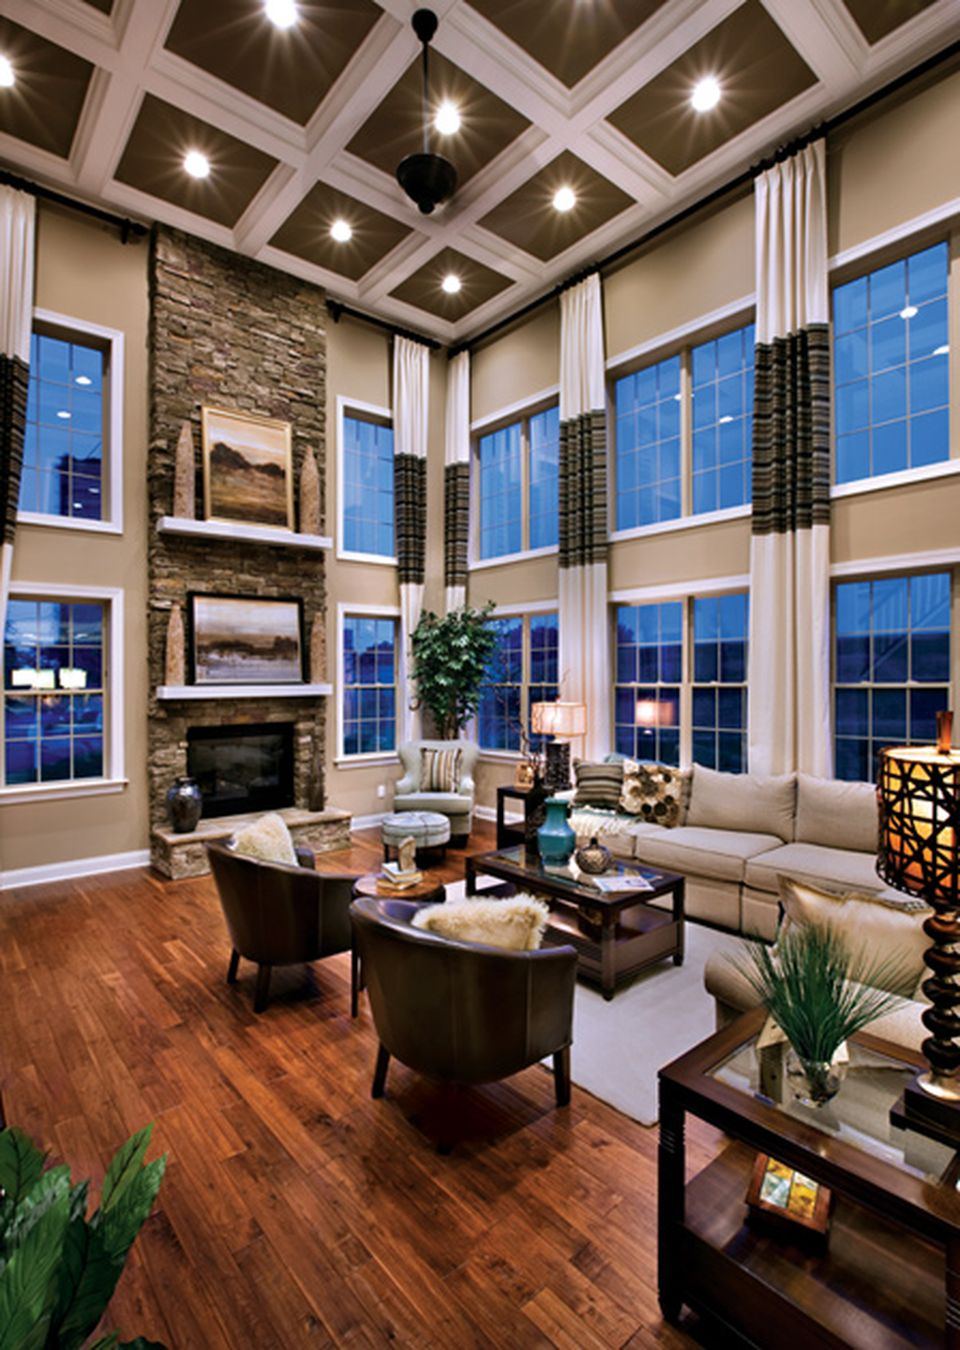 Cool Sunken Living Room Ideas For Your Dreamed House: Awesome Tall Curtains Ideas For Living Room 31